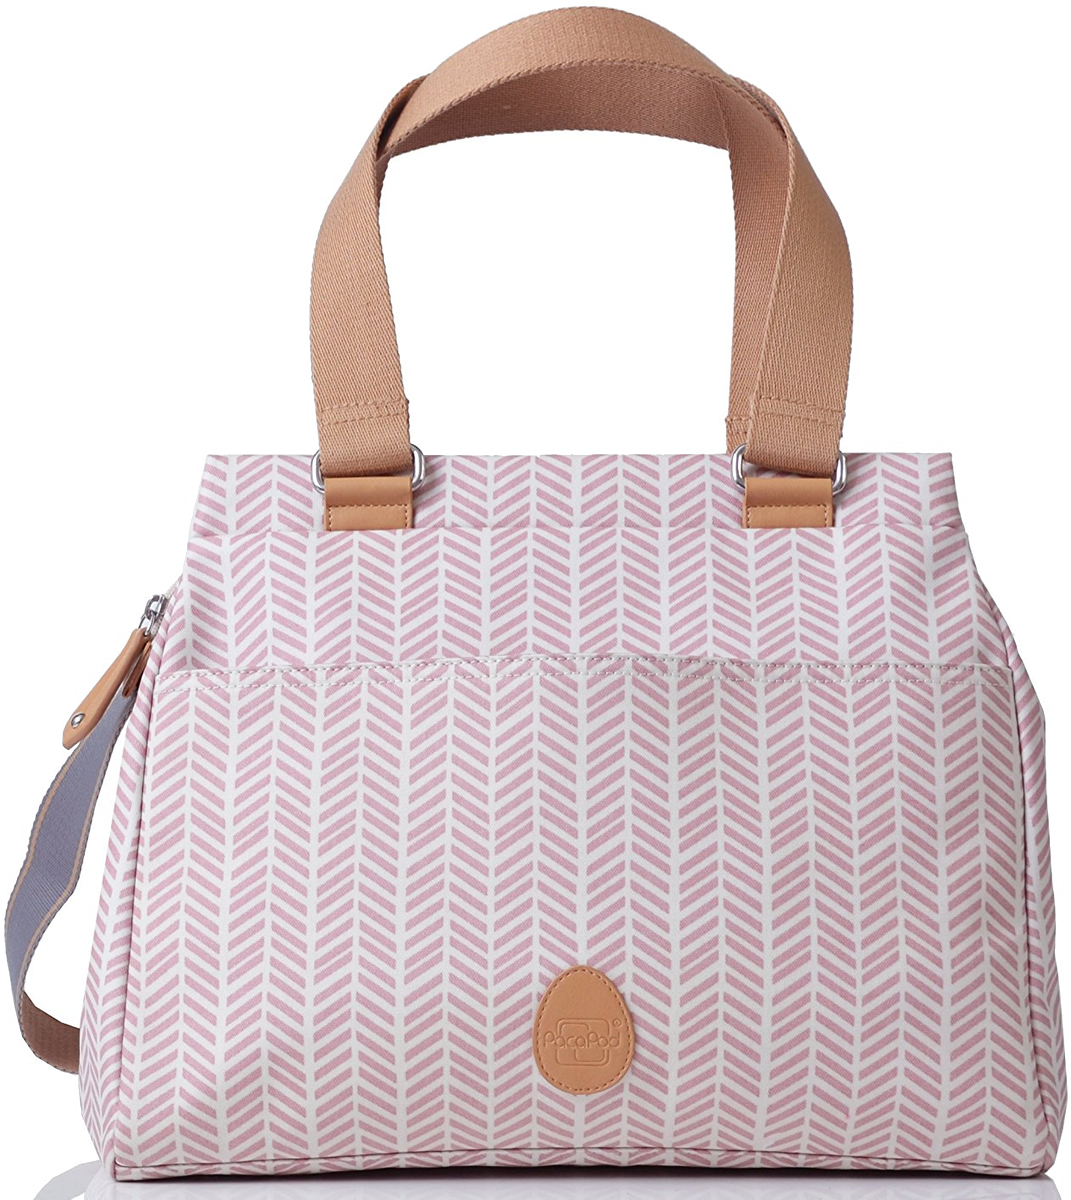 PacaPod Richmond Diaper Bag - Dusty Pink Herringbone